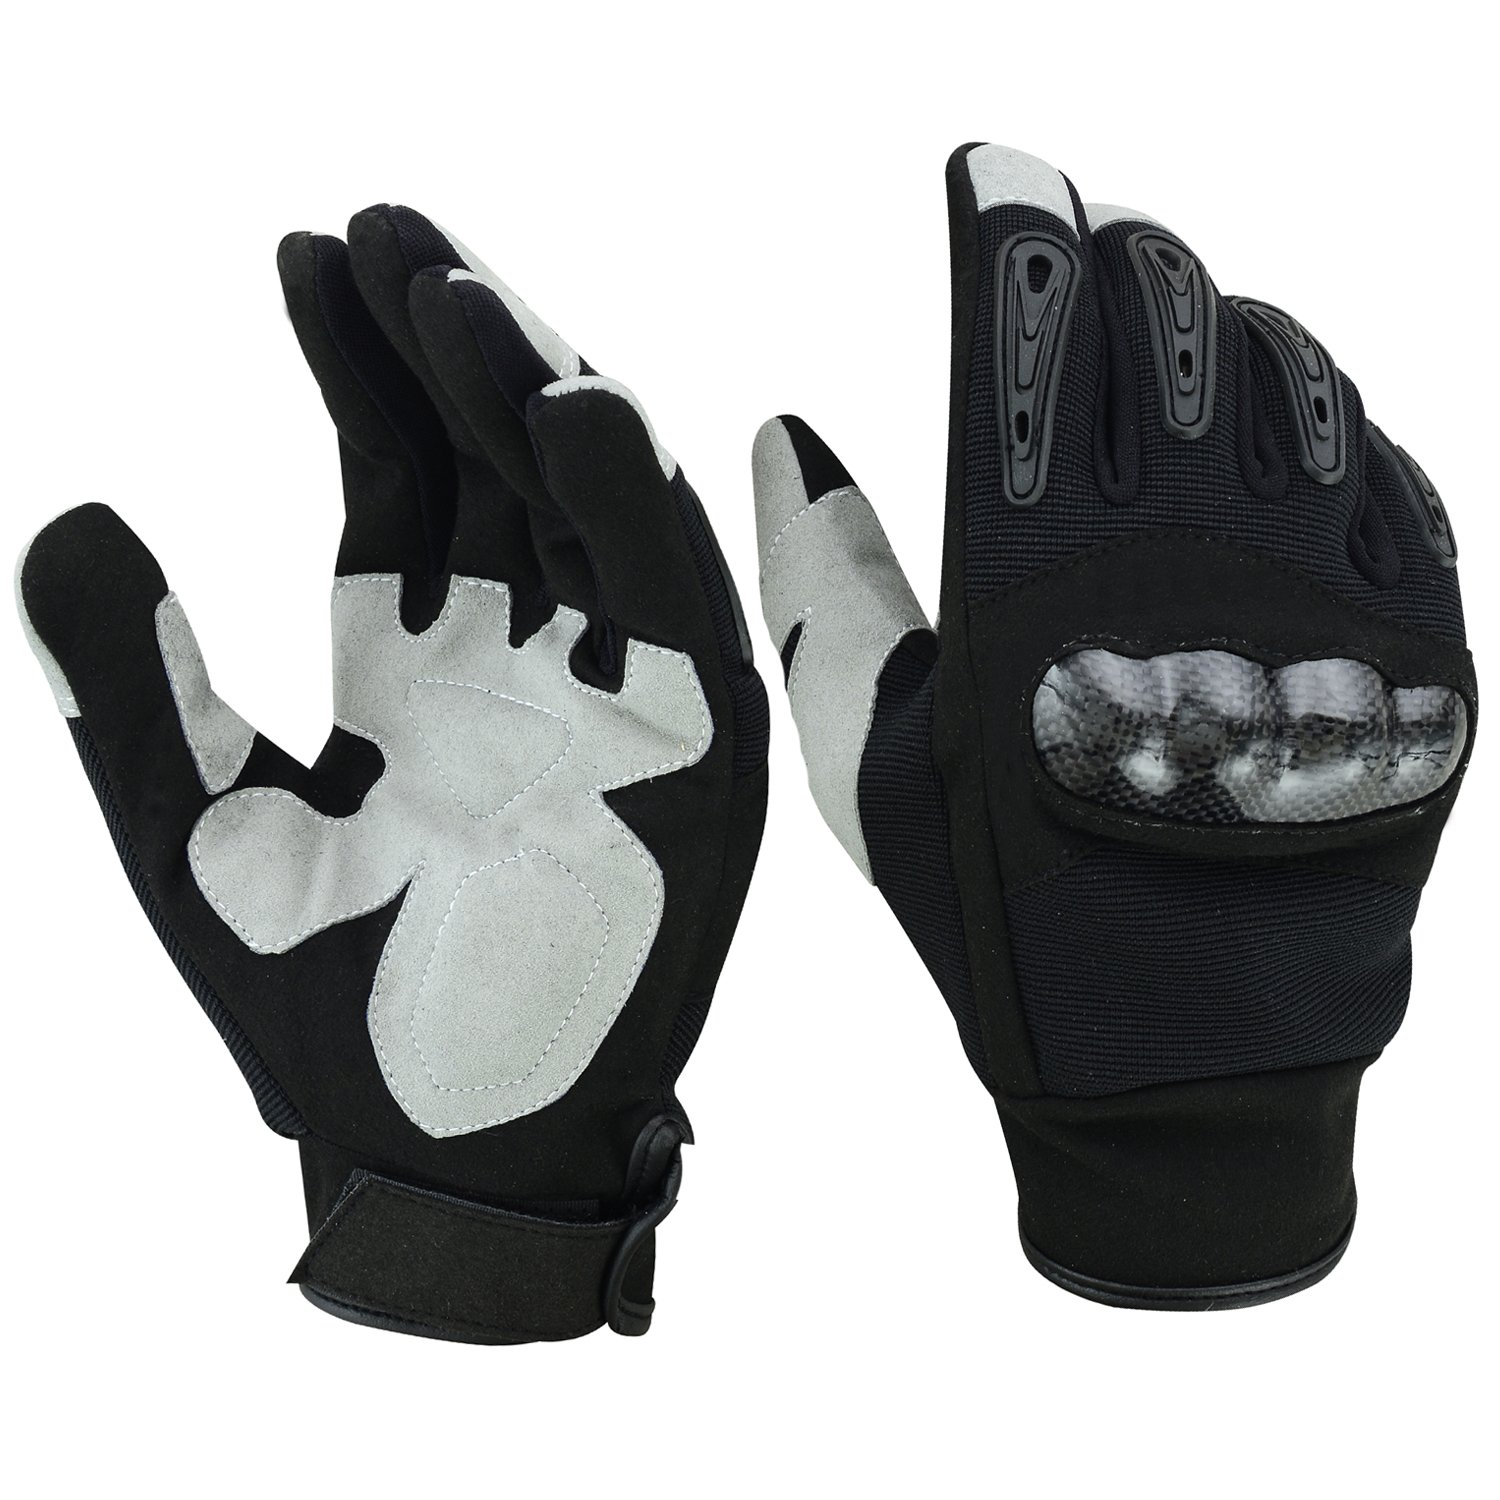 ROAR Mens Air Cooled No Sweat Carbon Fiber Knuckle Motorcycle Gloves Full Finger (Blk/White, Xlarge)